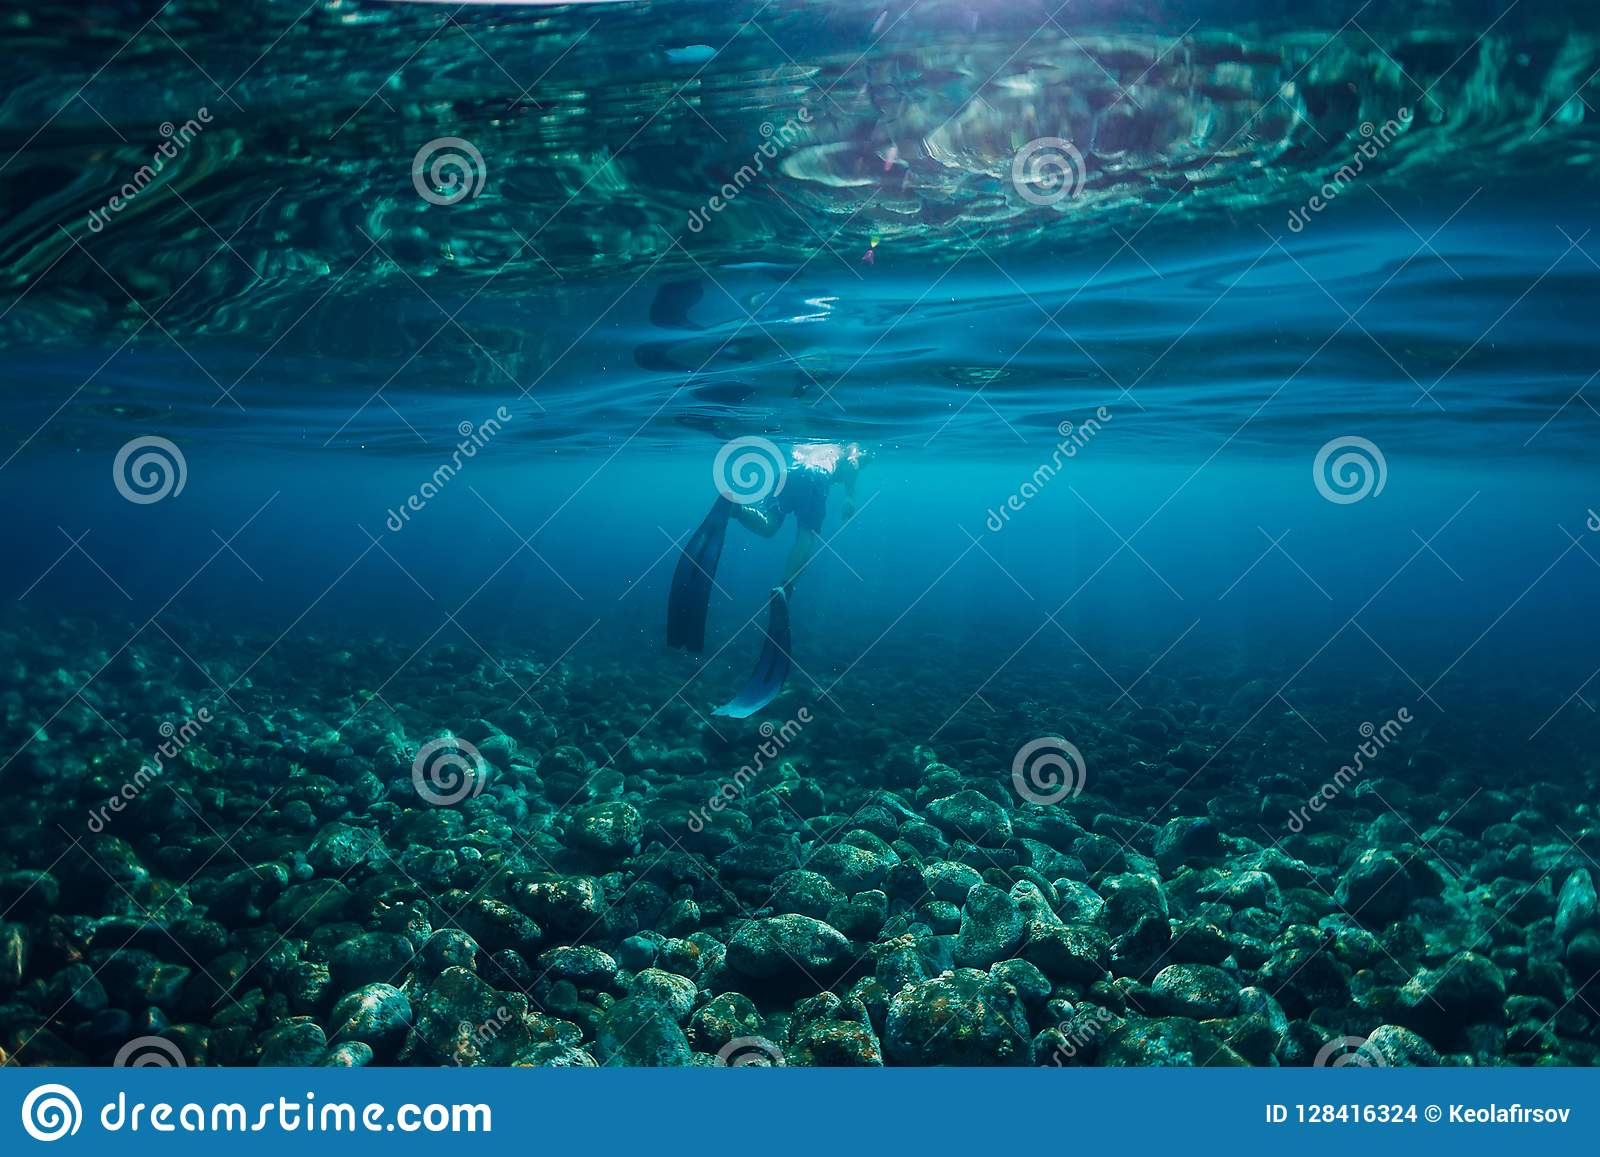 Free diver swim in ocean, underwater photo with sunlight